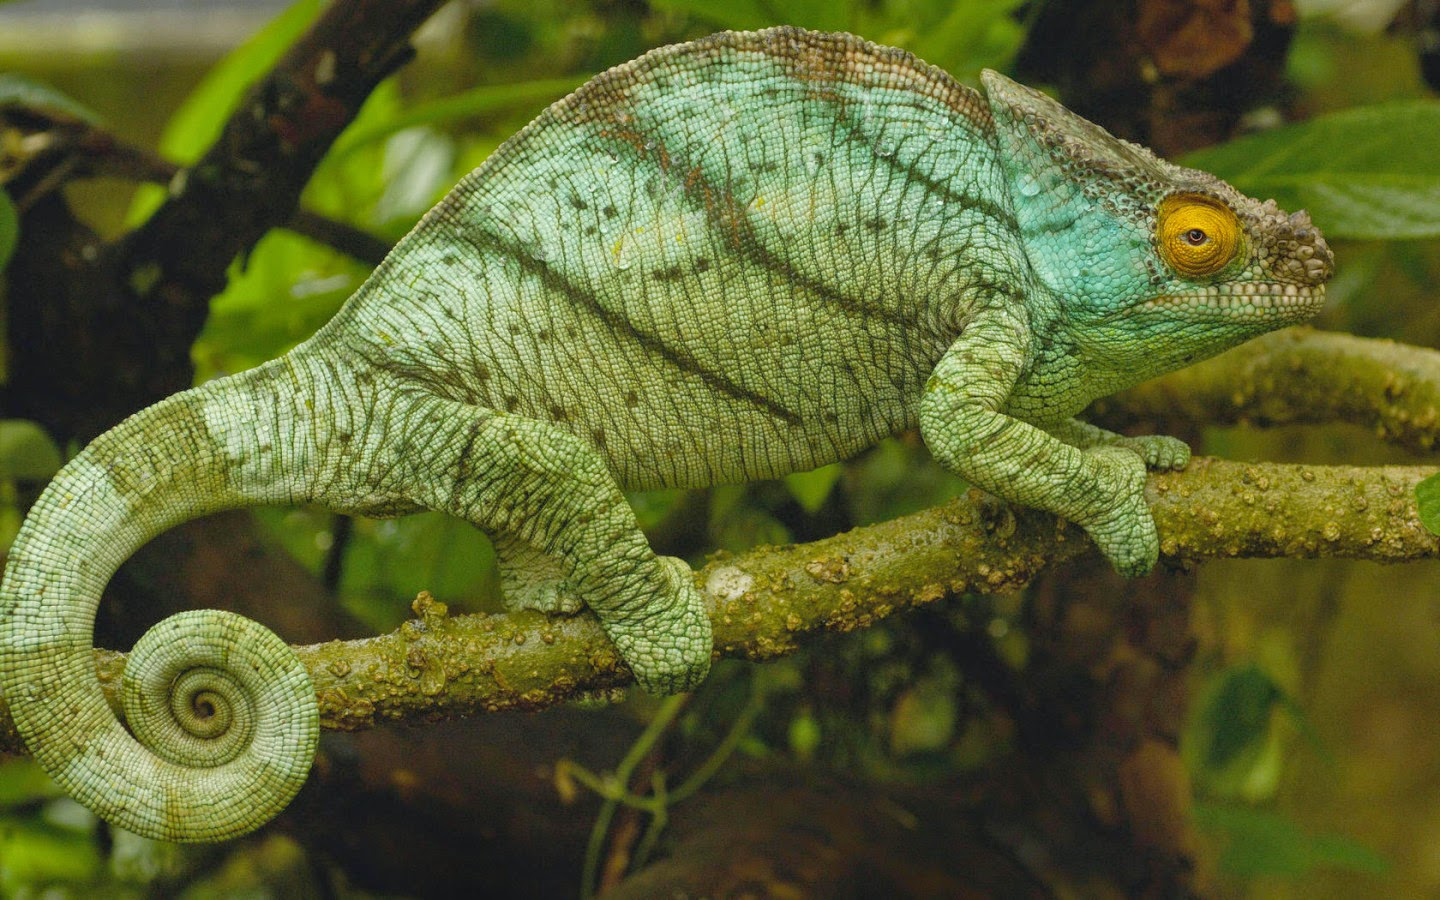 chameleon life cycle diagram paragon defrost timer wiring chameleons adaptations survival related keywords